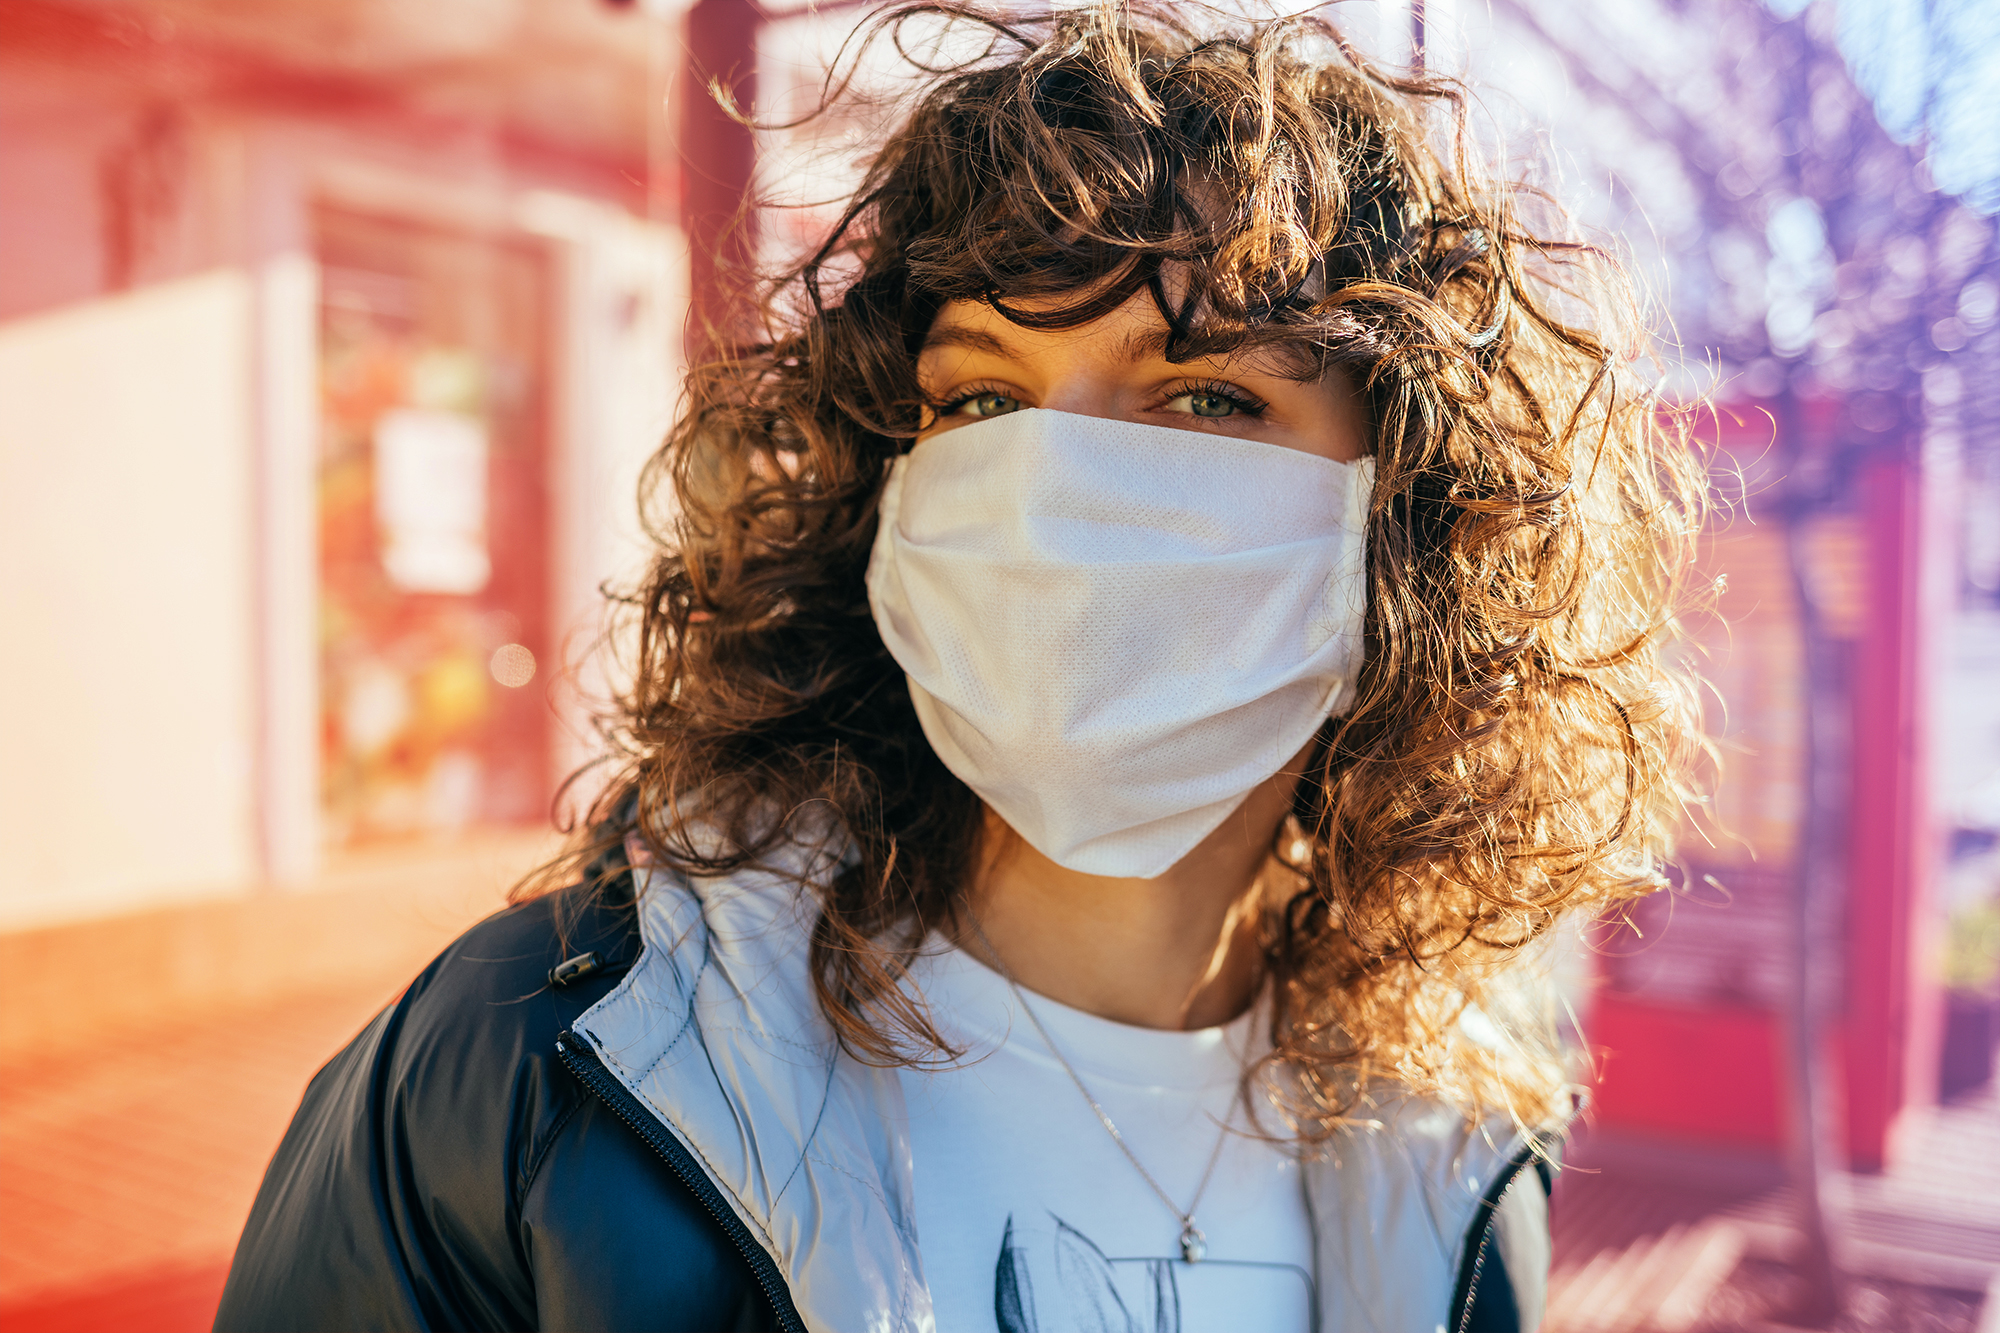 Prime Day Masks Deals , Portrait of young woman wearing medical facial mask standing outdoor in city on sunny spring day.